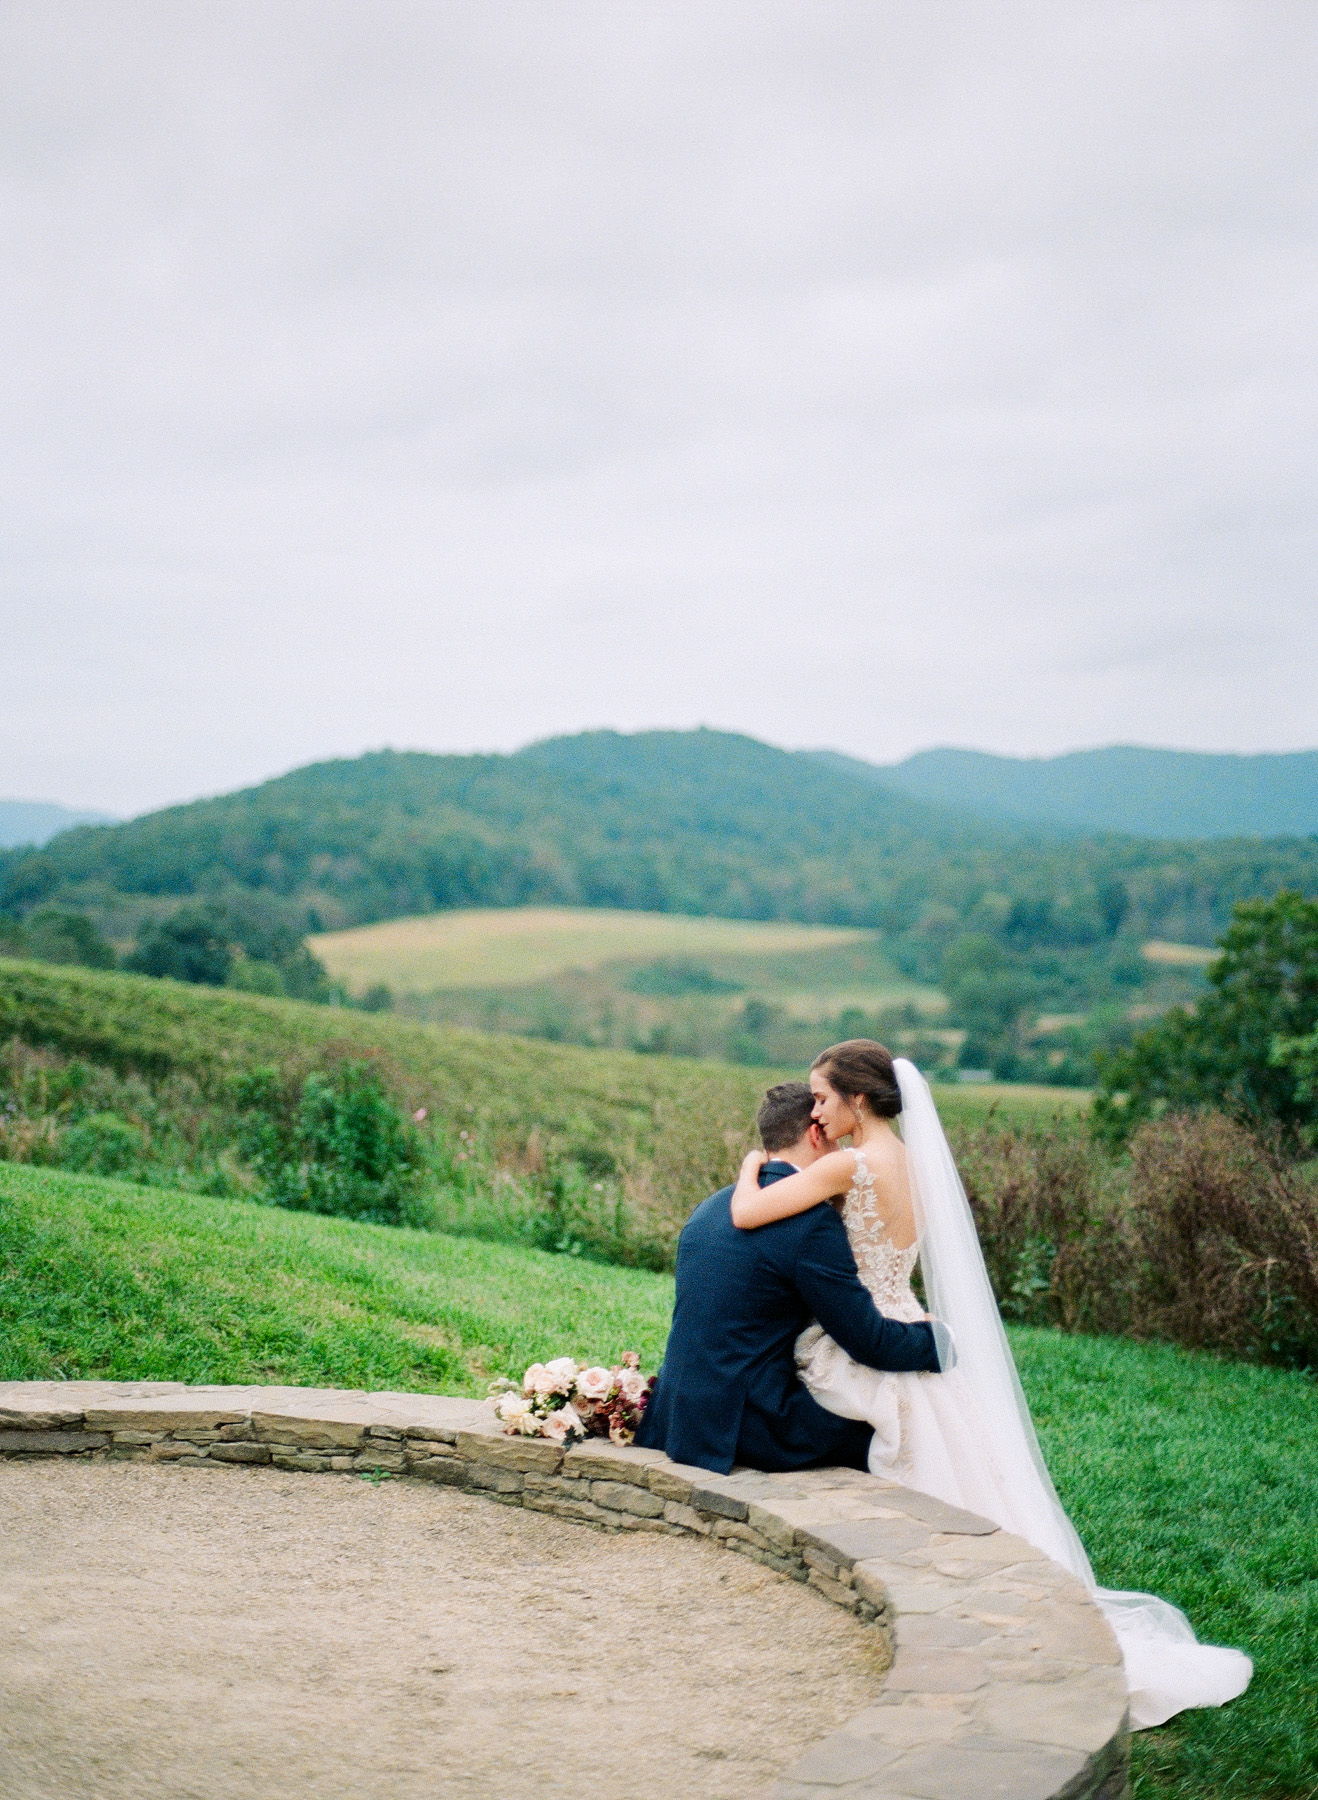 Pippin-Hill-Farm-and-Vinyards-Wedding-Film-Photography-37.jpg